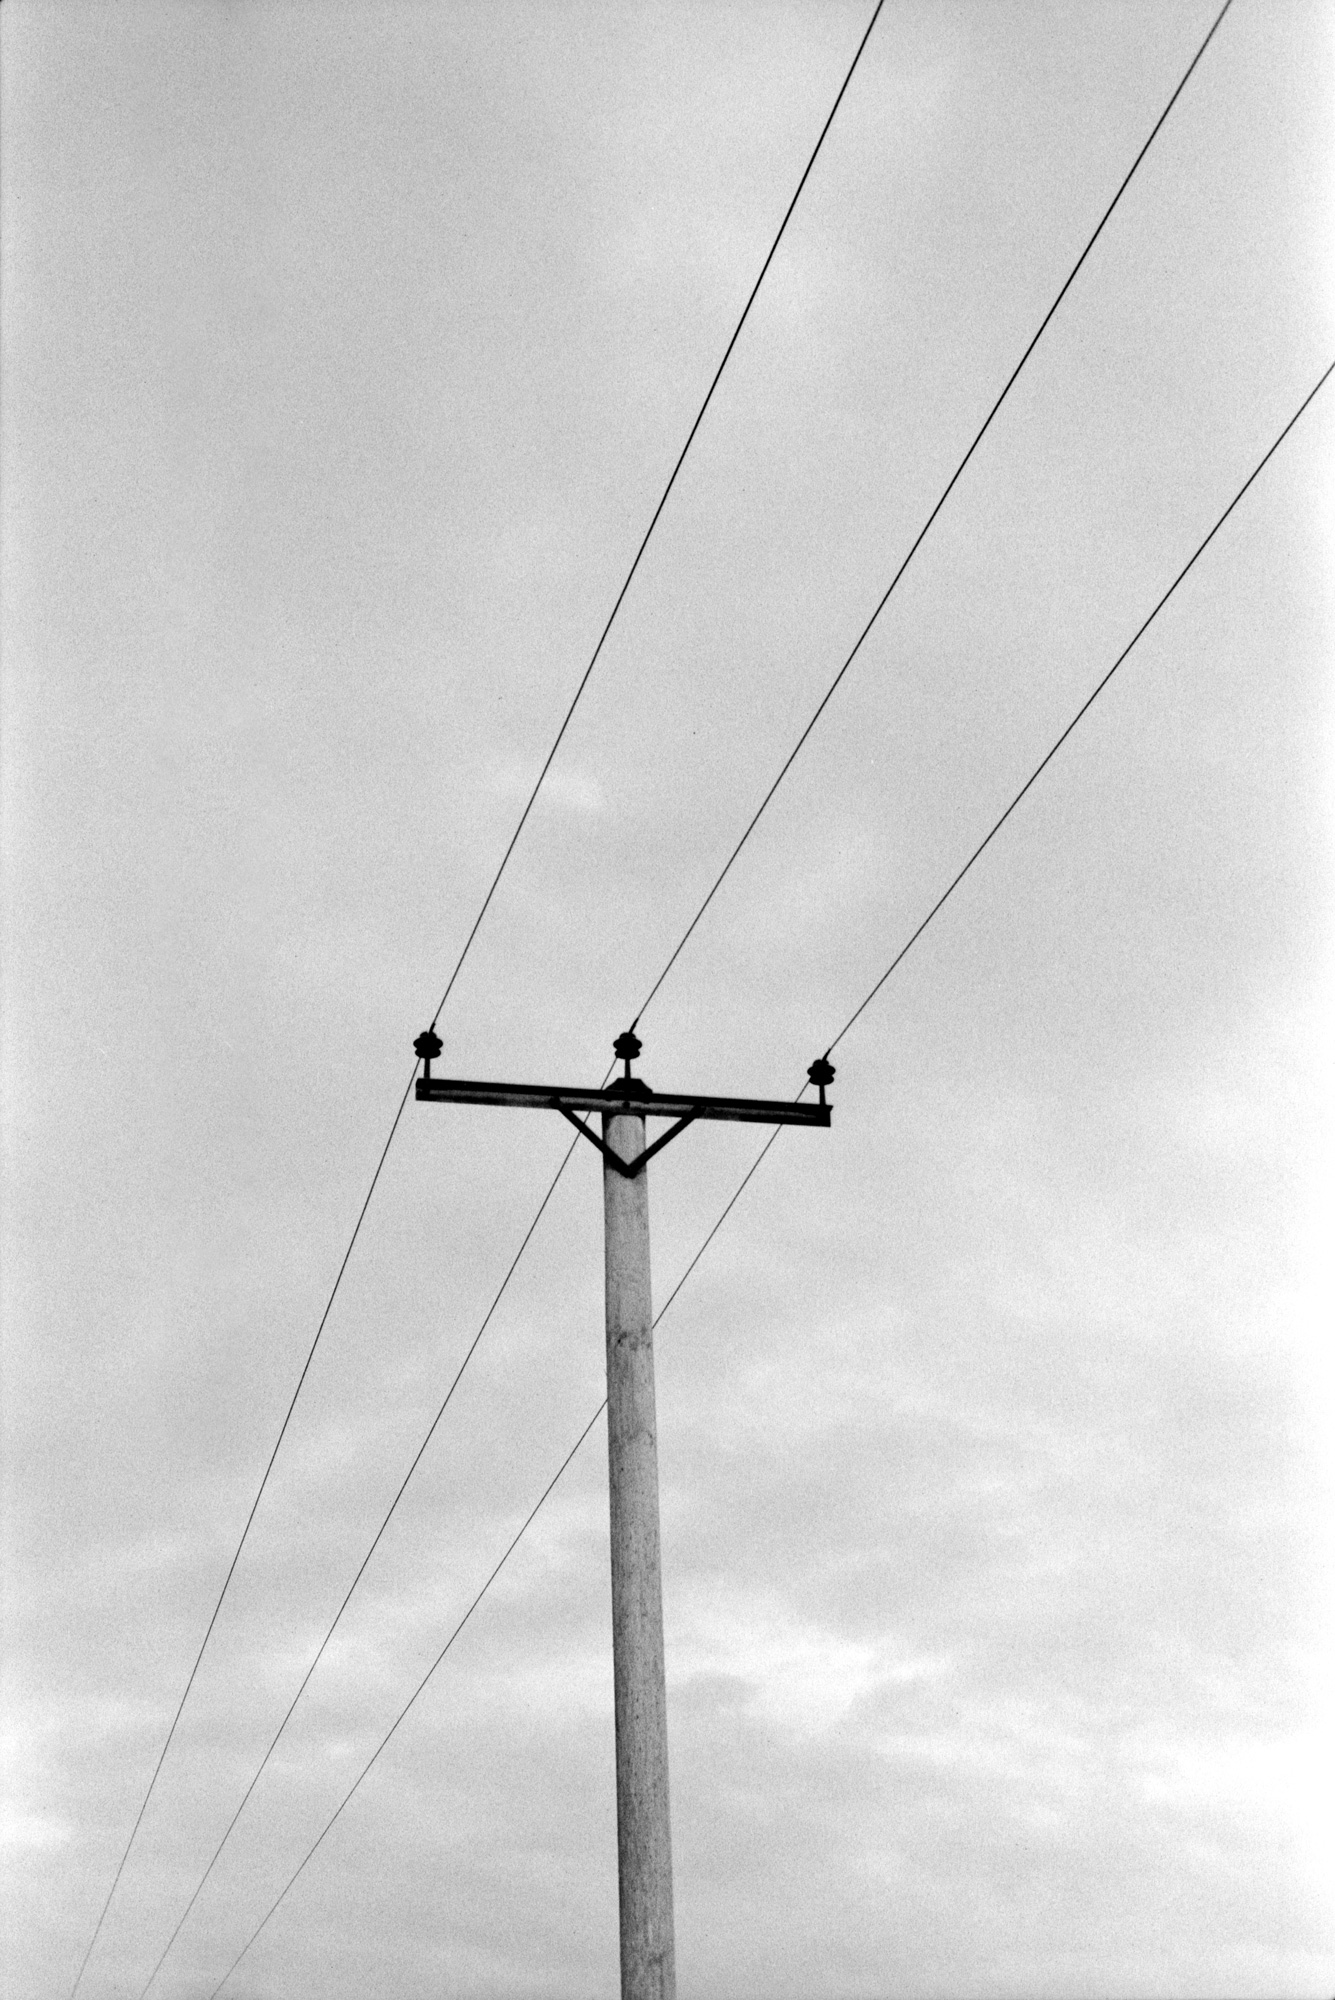 Phone Line, Observations Series, Photography By Ioannis Koussertari